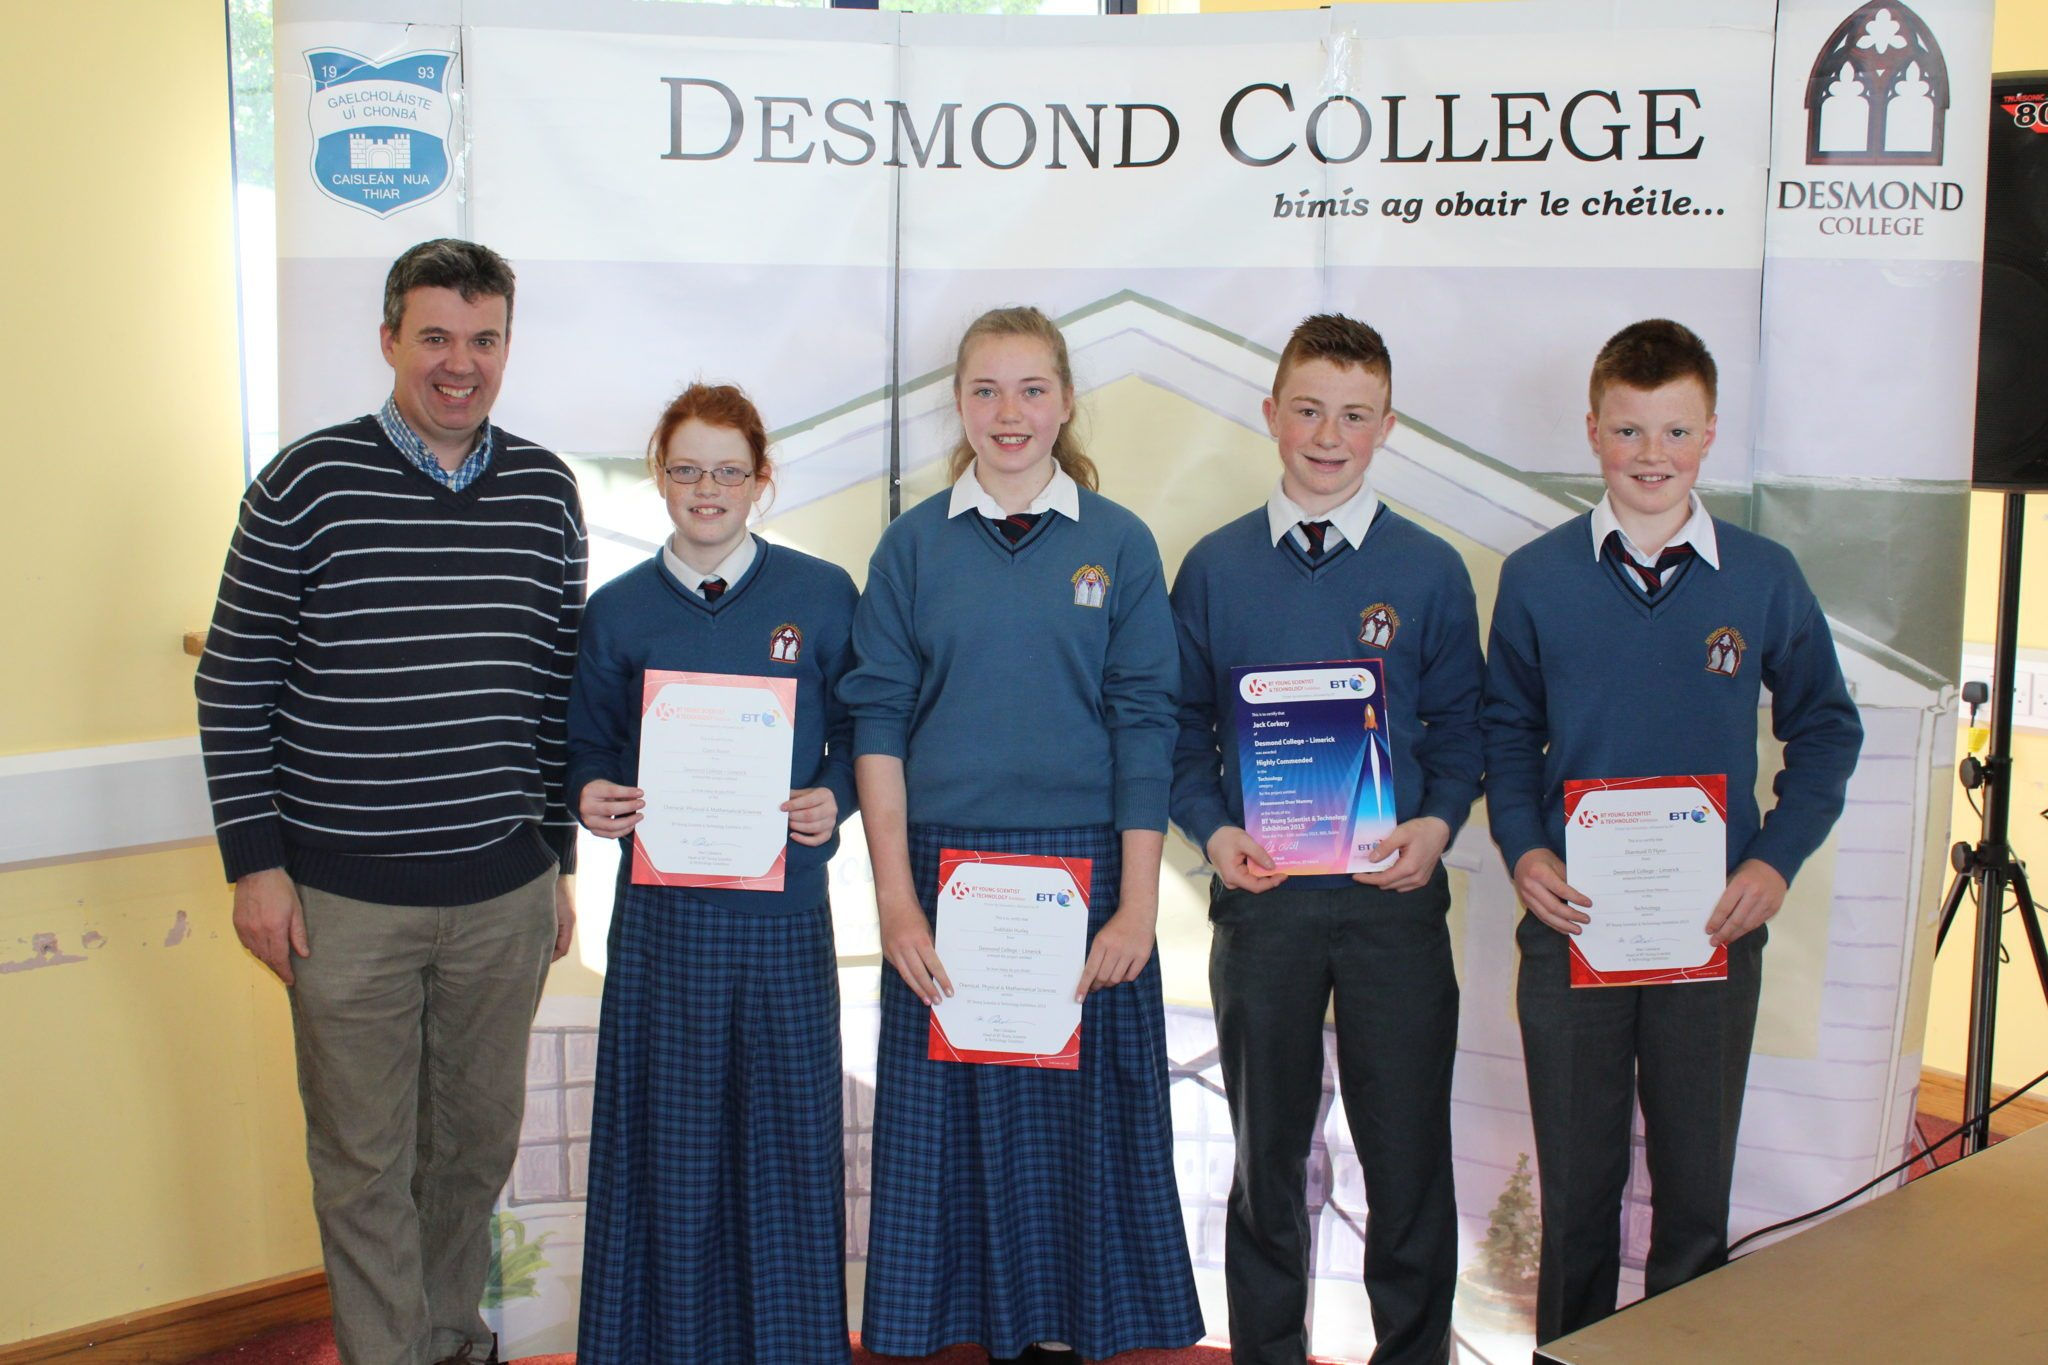 Desmond College Student Awards May 2015 : Young Scientist Awards : Mr. Colm Lowe, Claire Nolan, Siobhan Hurley Jack Corkery, Michael O'Flynn